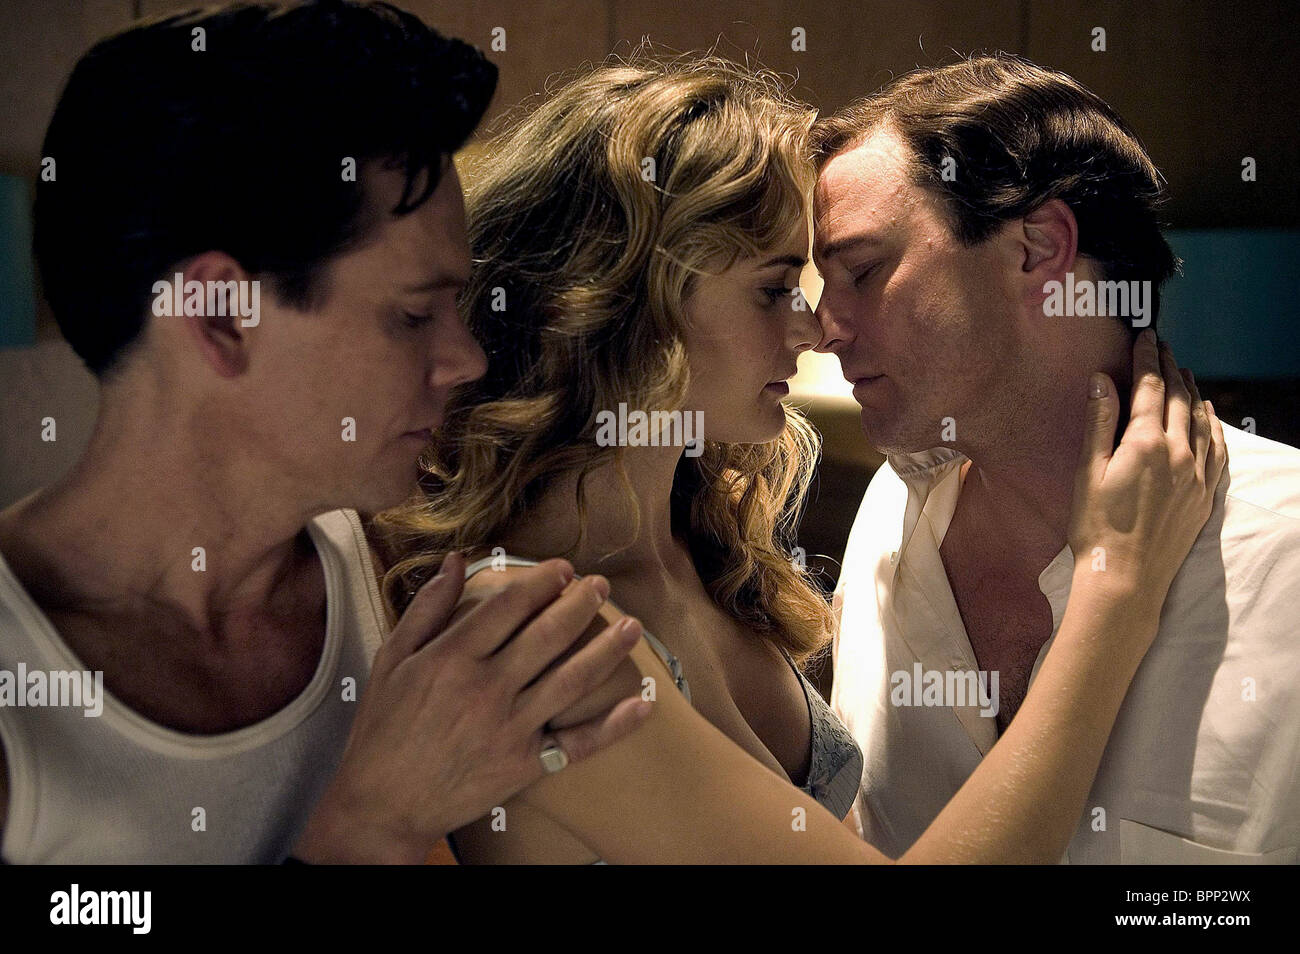 KEVIN BACON RACHEL BLANCHARD & COLIN FIRTH WHERE THE TRUTH LIES (2005) - Stock Image